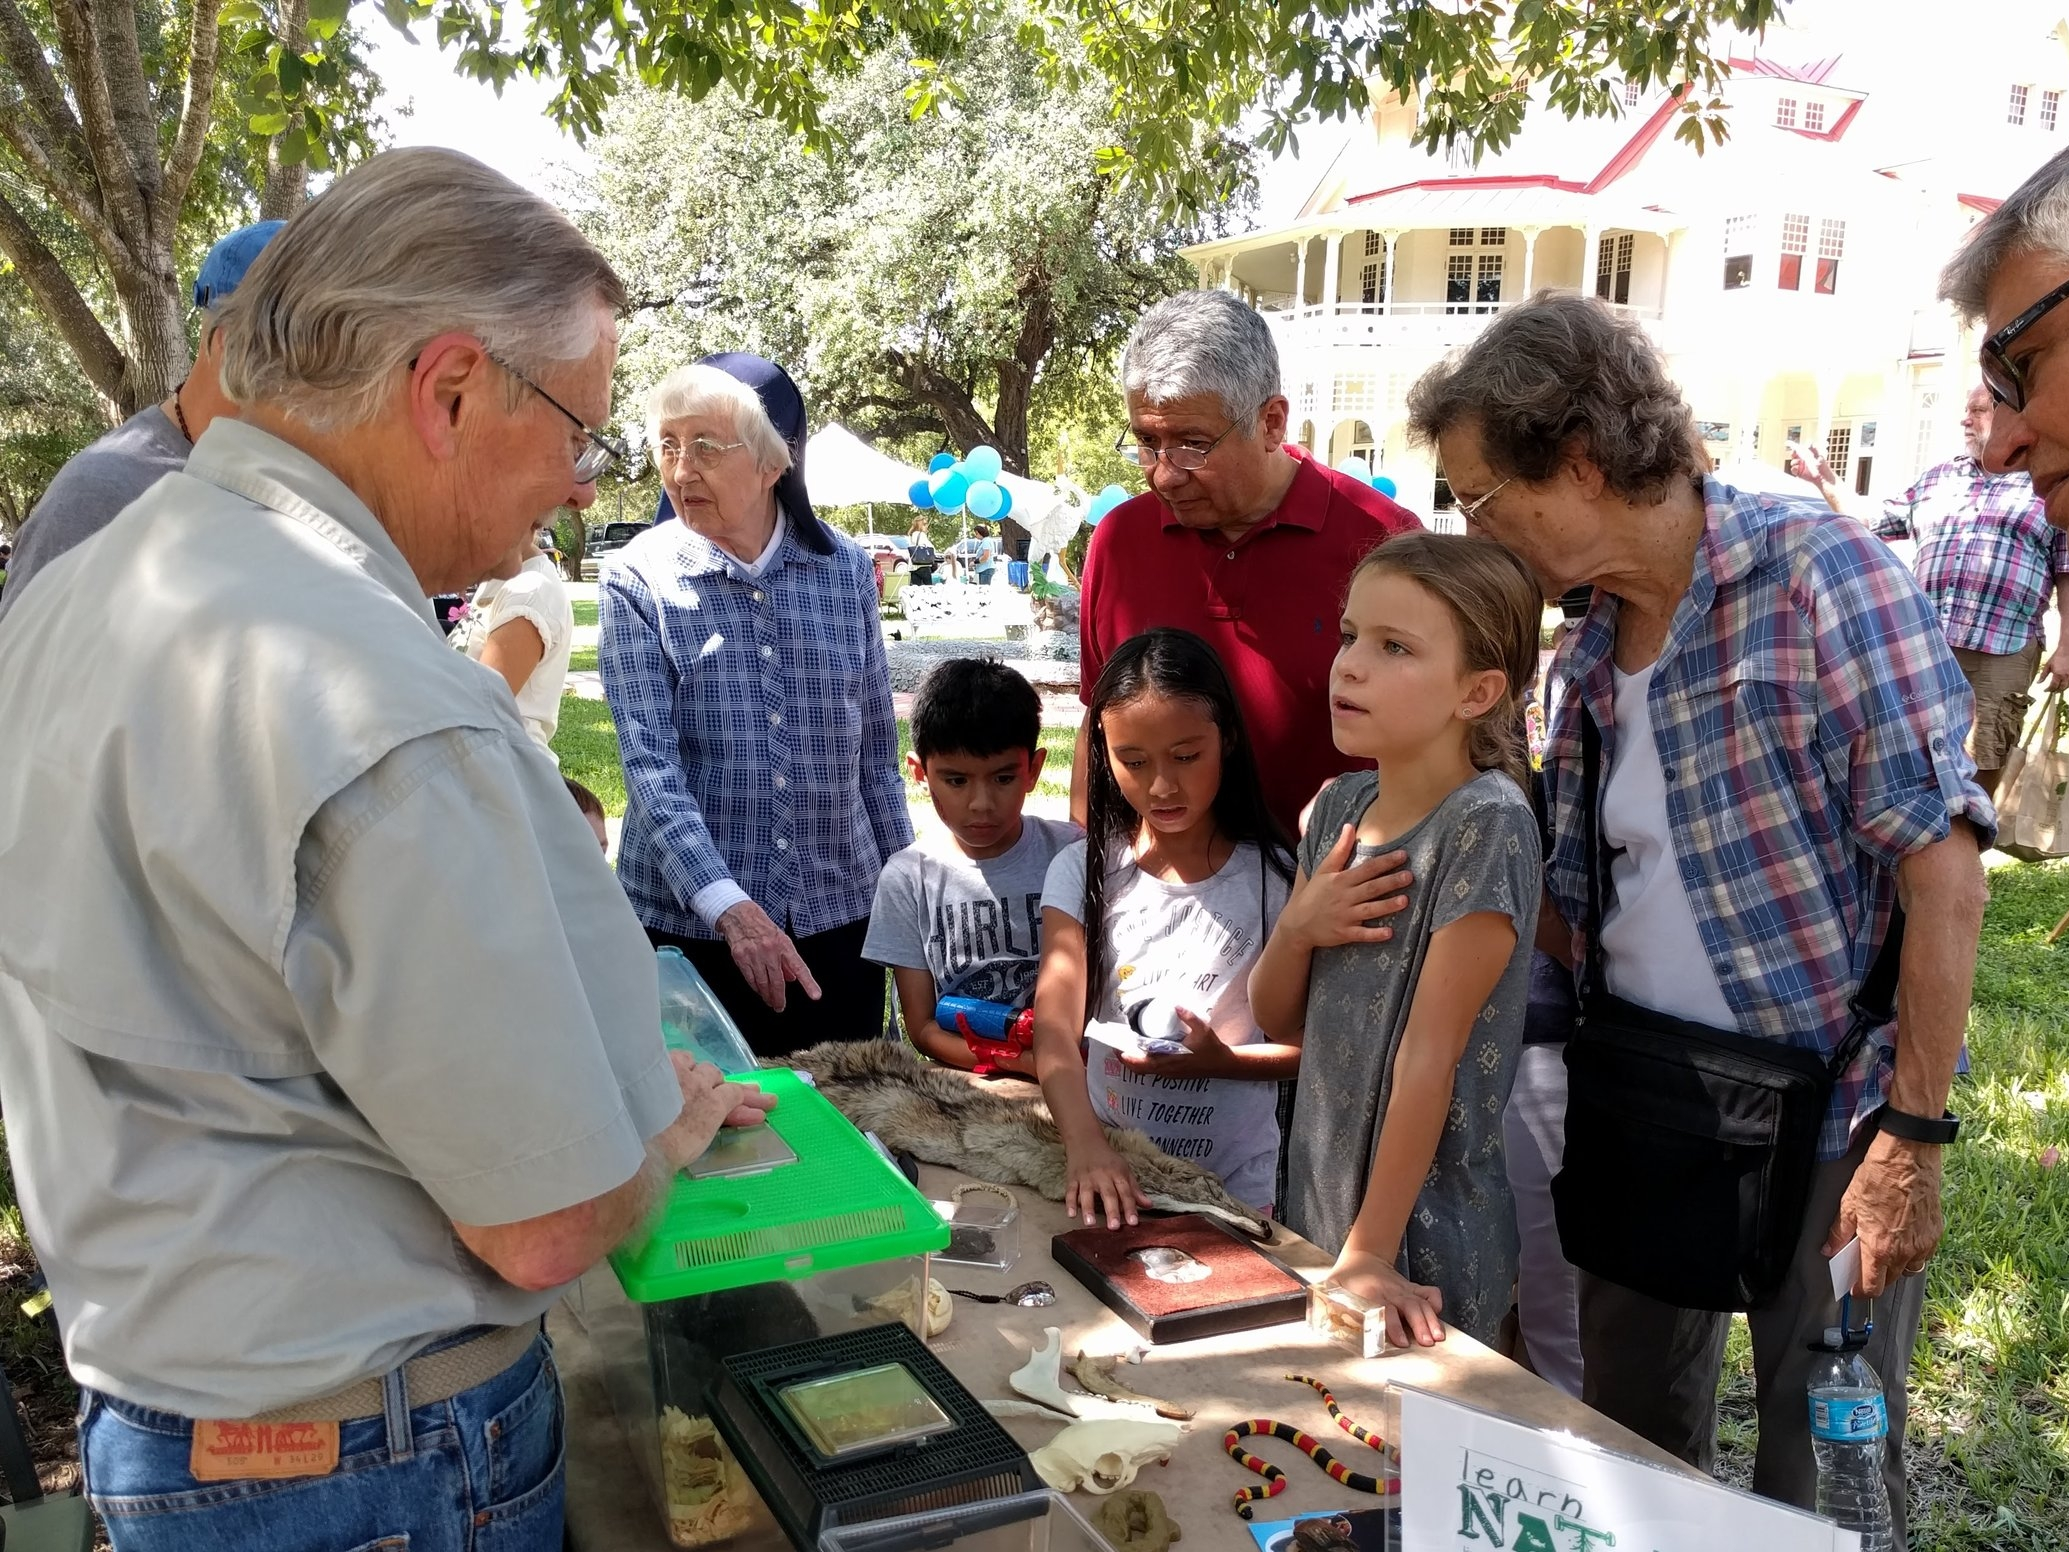 Native Wildlife and Habitat Celebration - Held in October, this family-oriented, gathering on the grounds of the historic Brackenridge Villa provided information about bees, bats, birds, snakes, native plants, invasive plants, rain gardens, and the importance of milkweed.